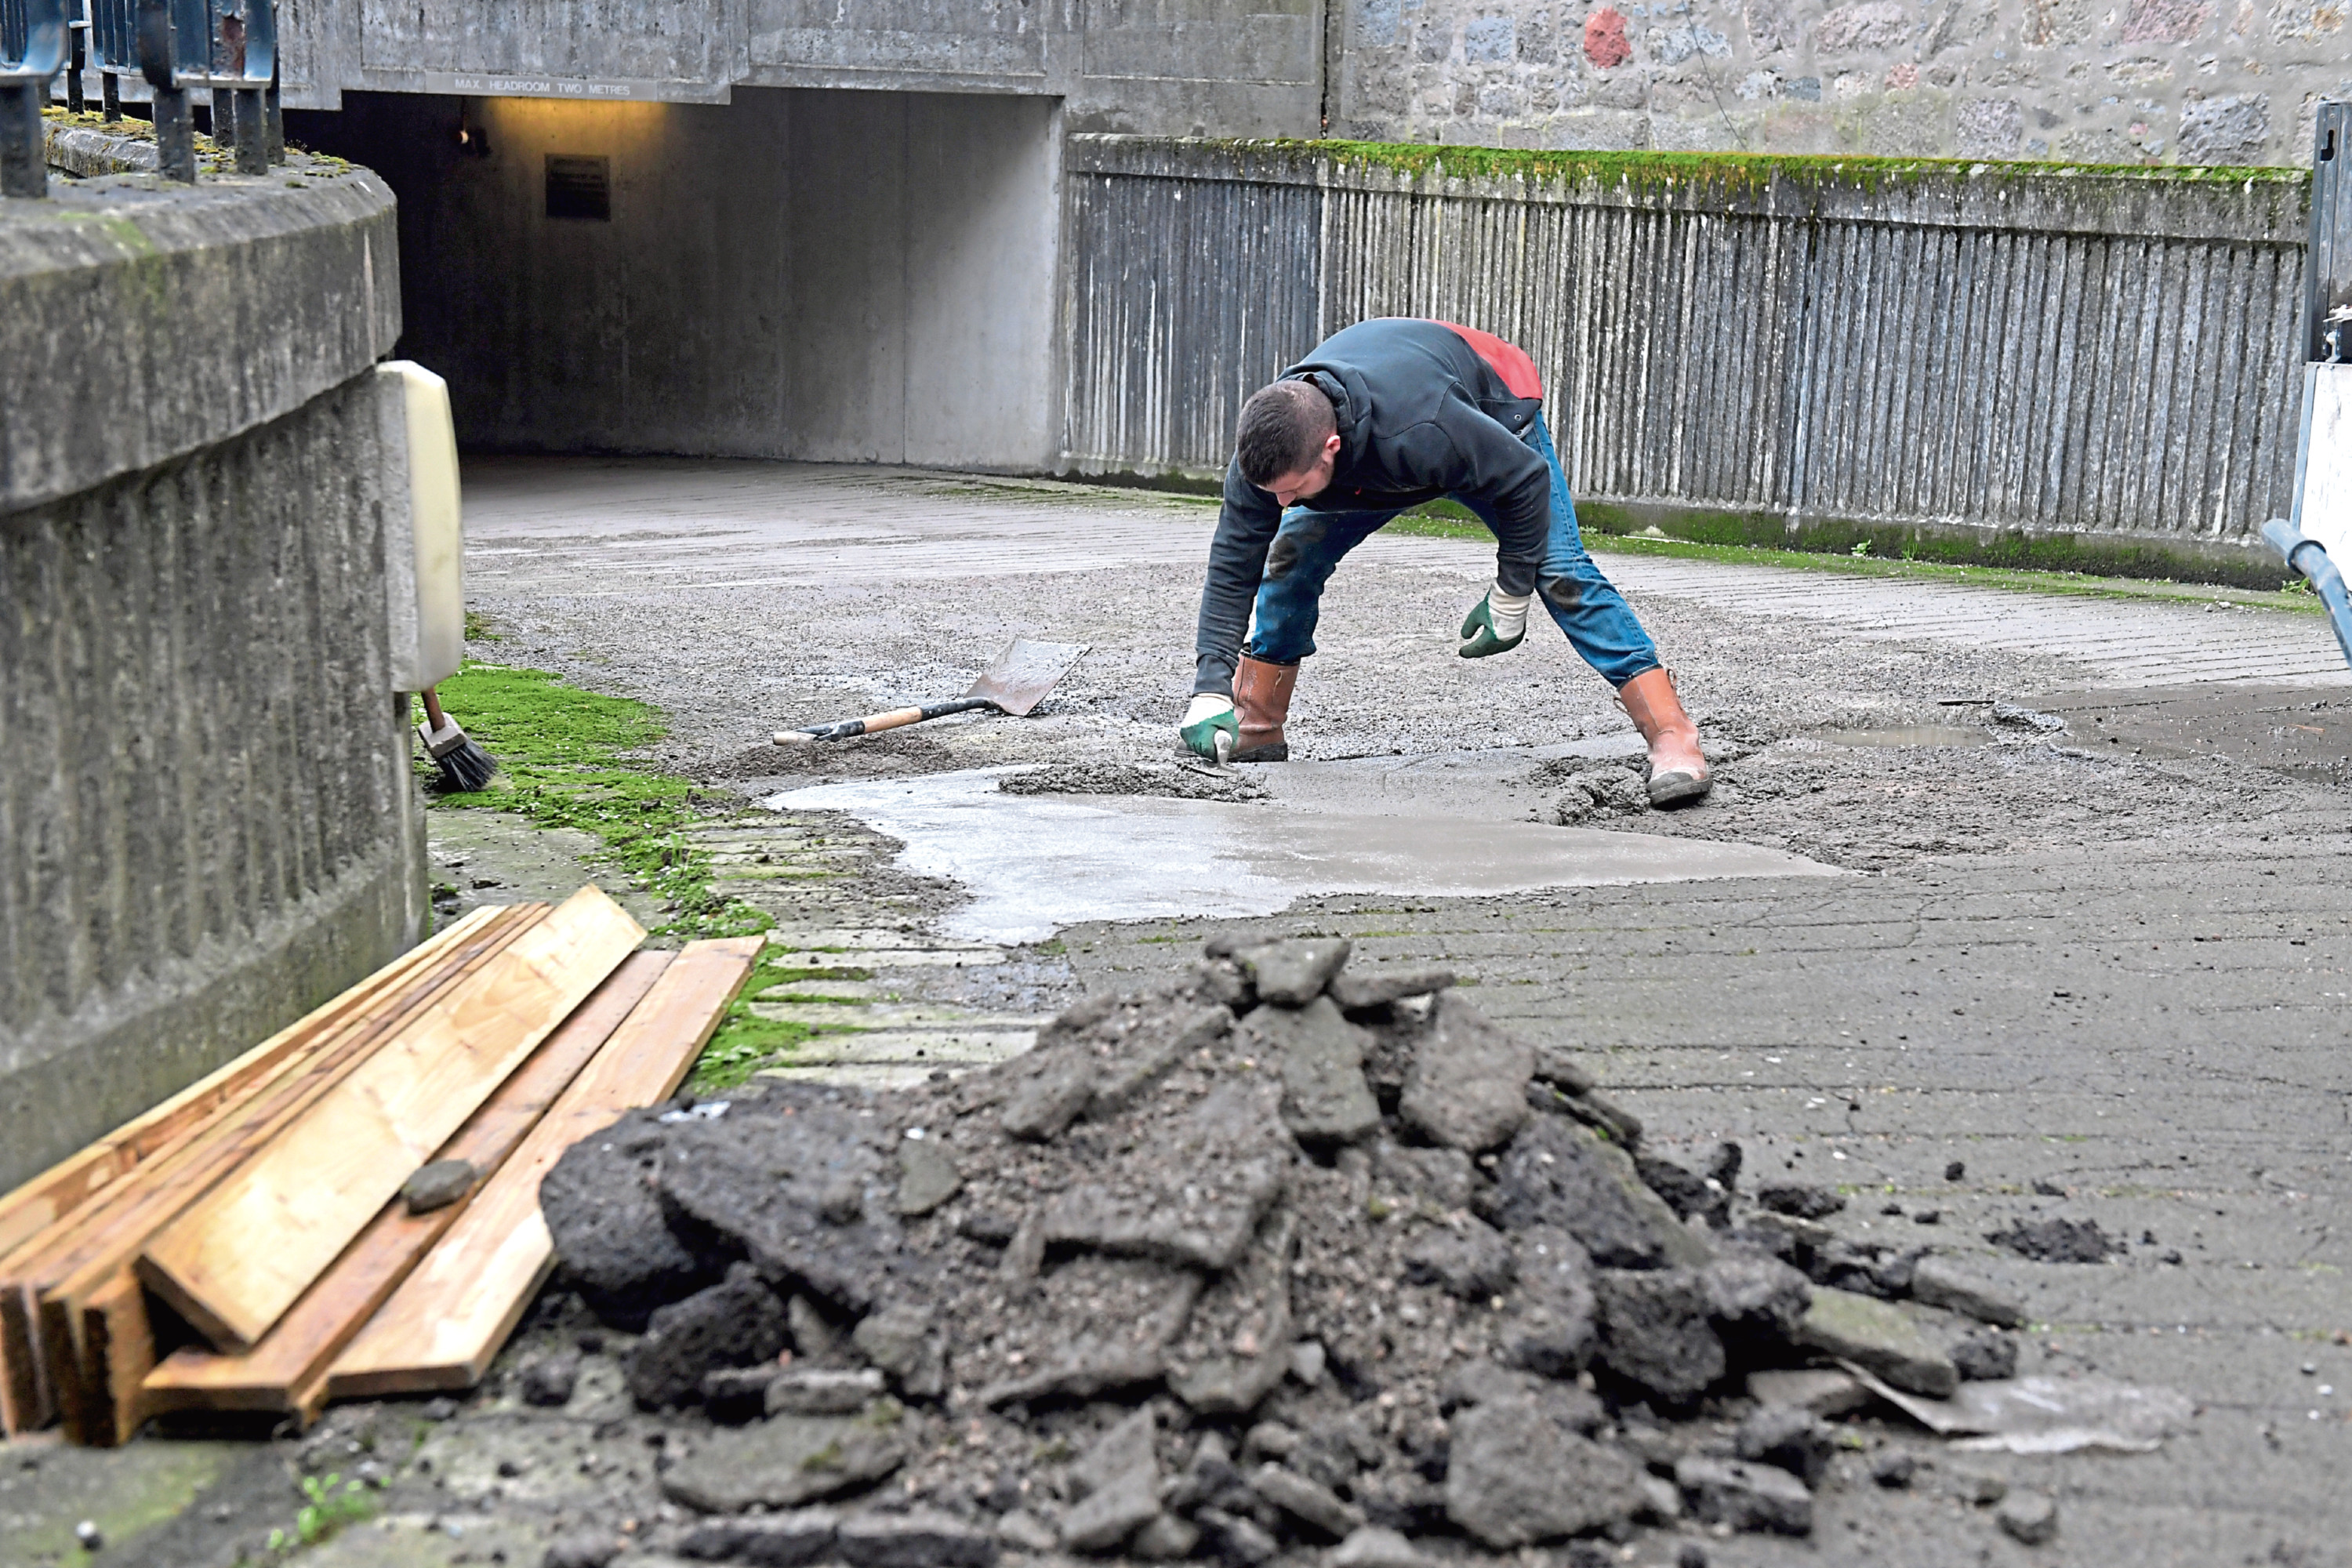 The repairs to the car park cost £600